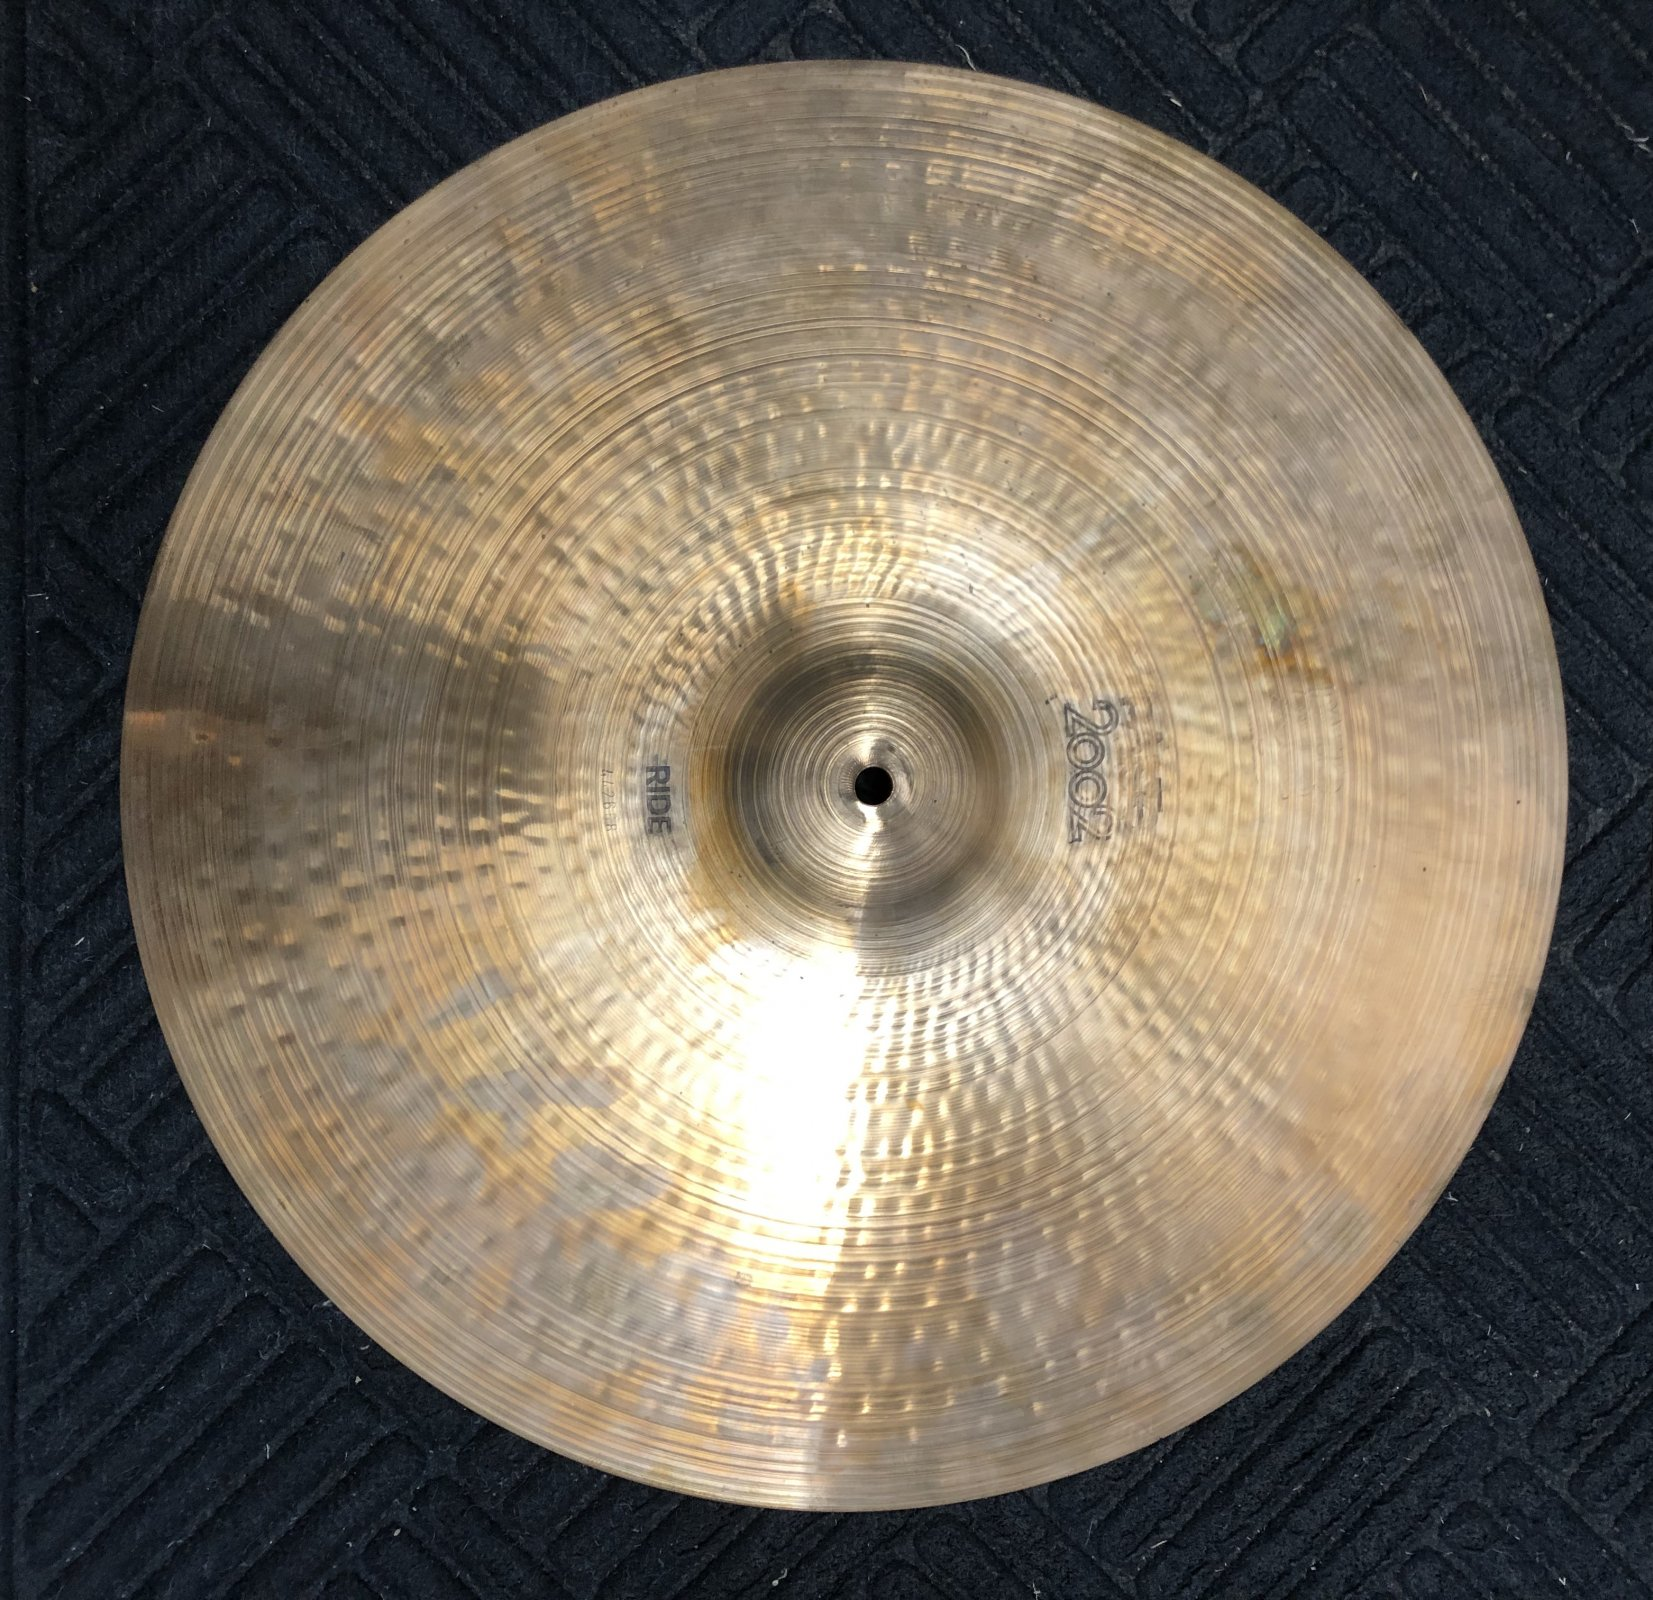 Paiste 20 2002 Ride Cymbal 1970s Traditional with Black Label